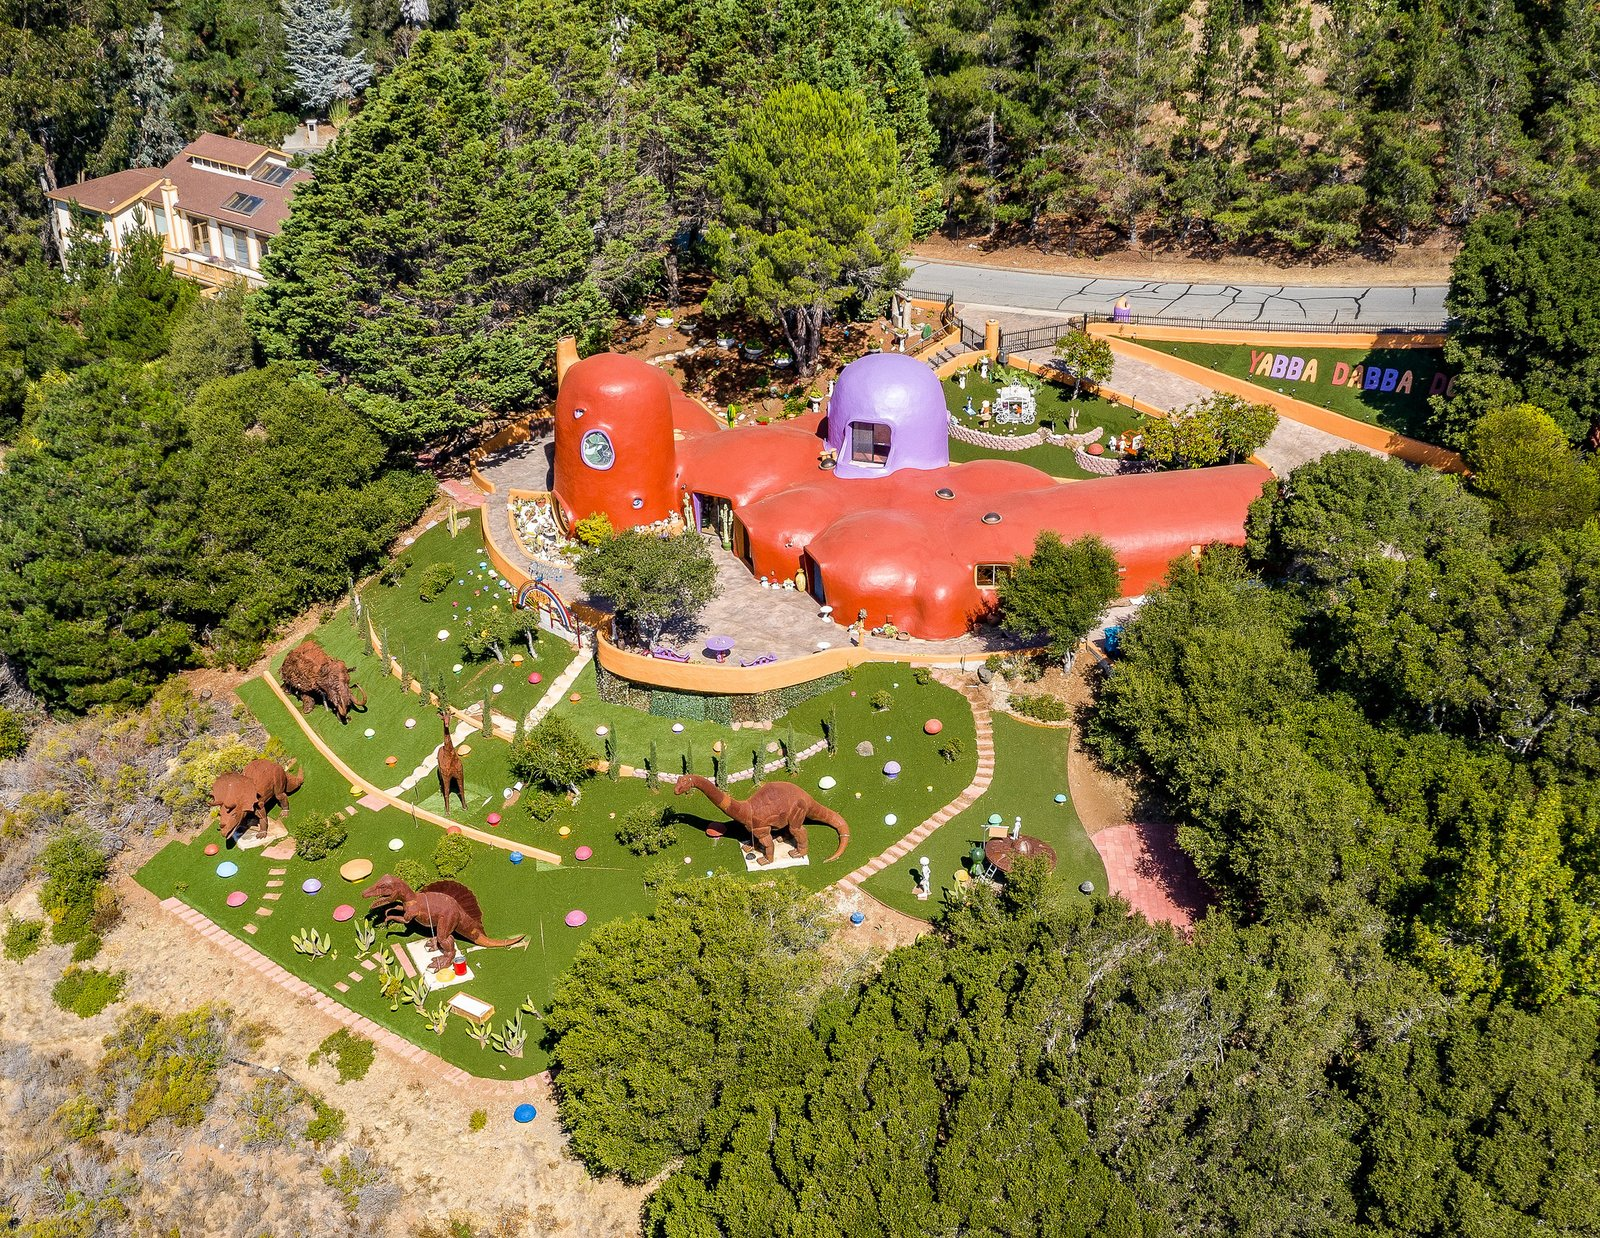 Exterior, Stone Siding Material, Curved RoofLine, and House Building Type  Photo 1 of 7 in Northern California's Infamous Flintstone House Is Being Sued as a 'Public Nuisance'